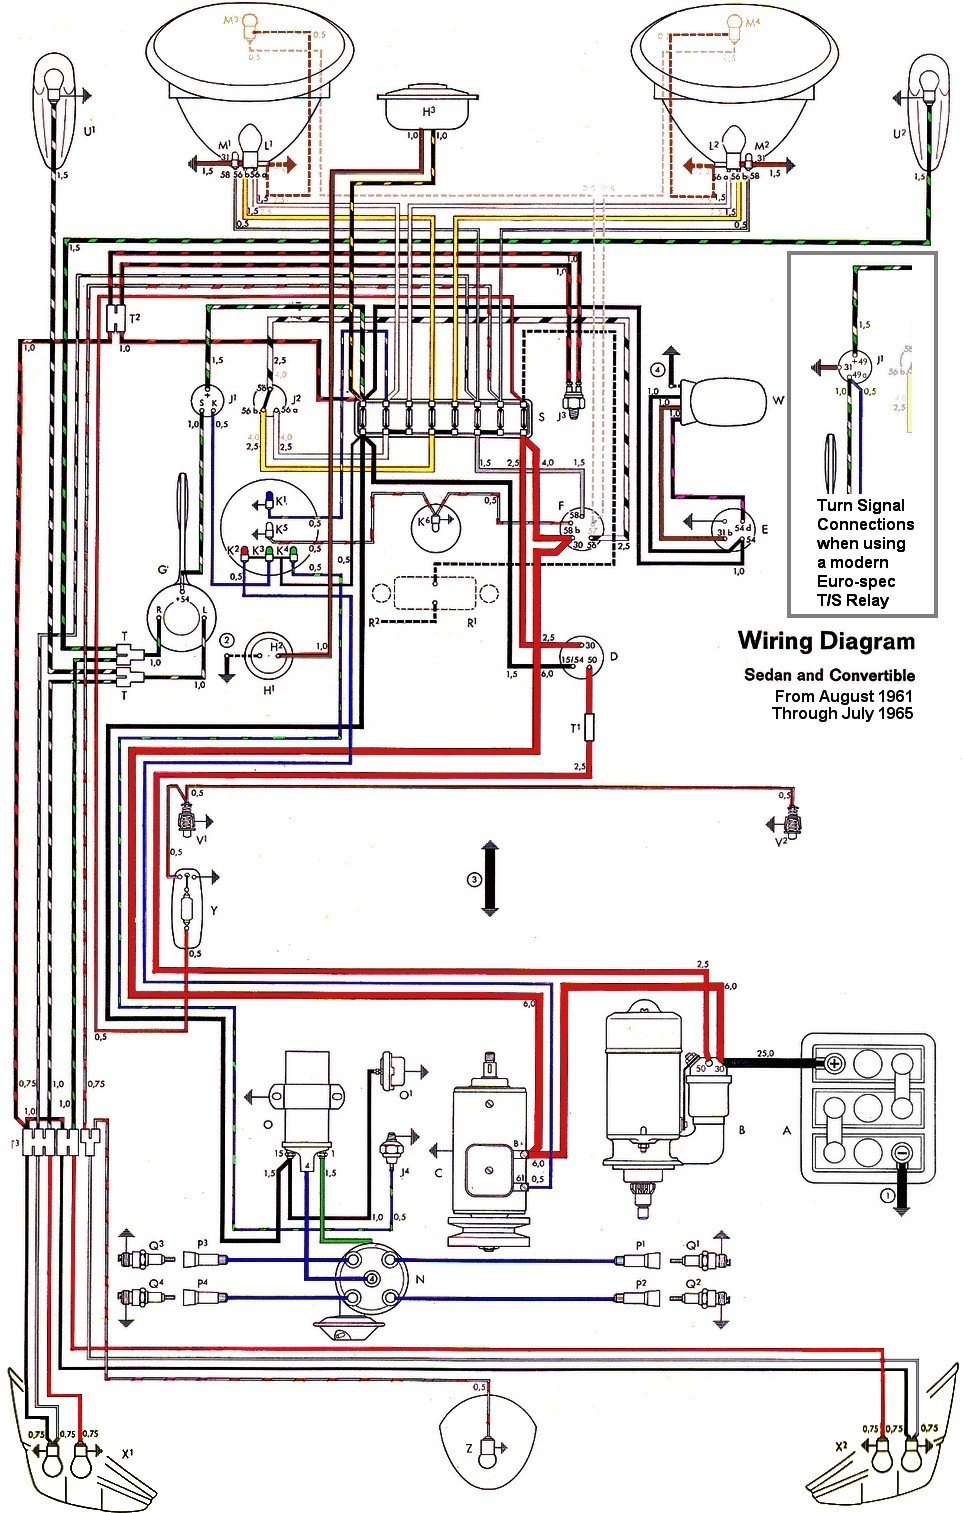 bug_62 65withinset thesamba com type 1 wiring diagrams 1973 vw wiring diagram at fashall.co